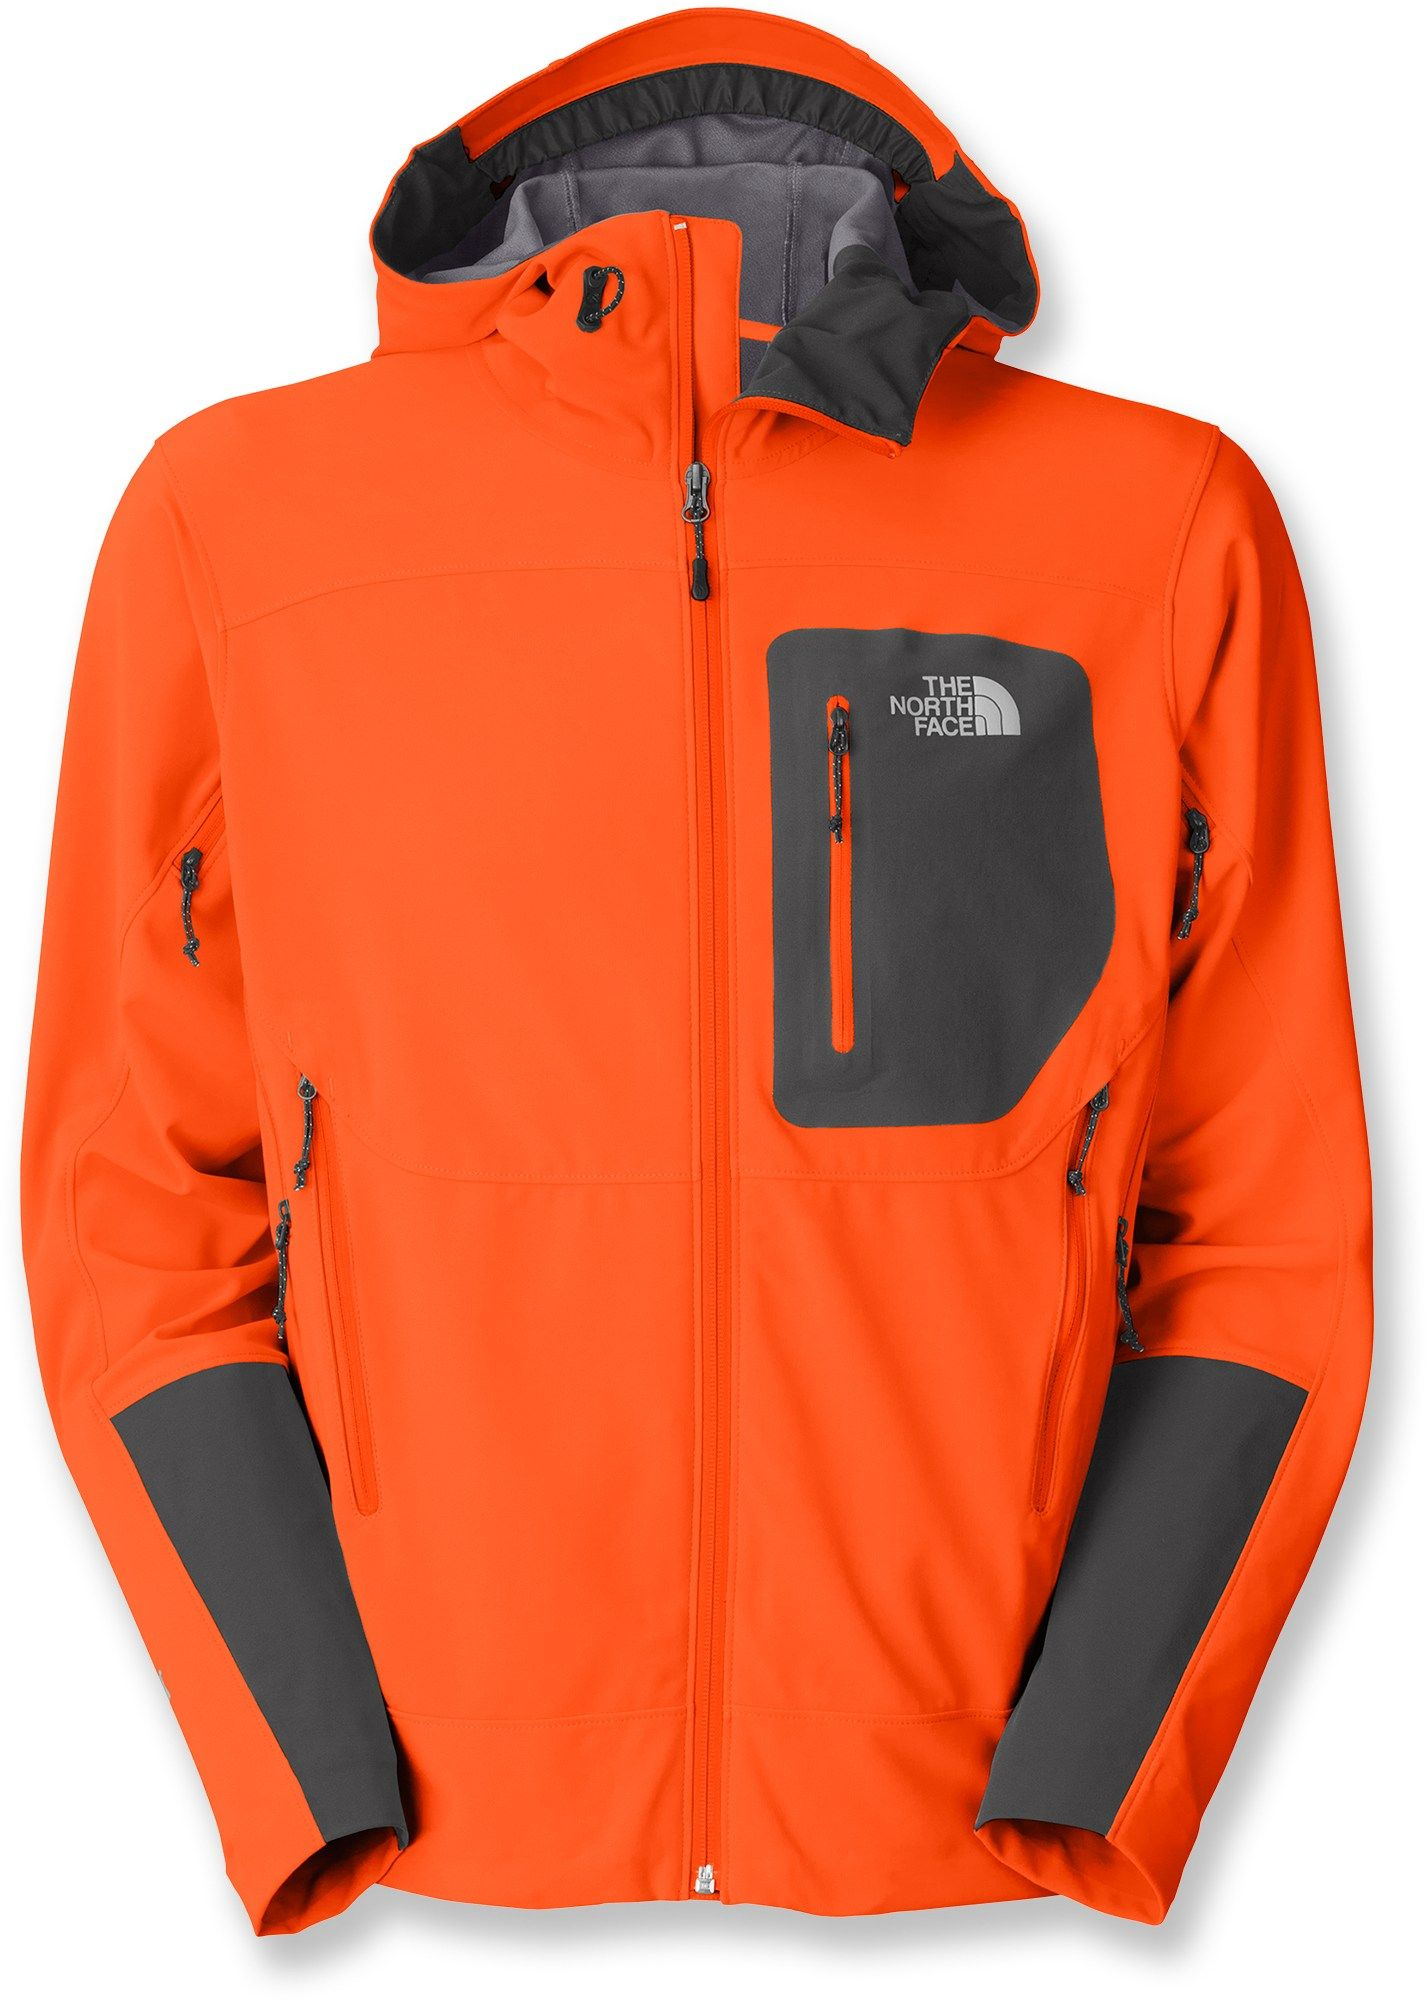 513670fa6 The North Face Alpine Project Soft-Shell Jacket - Mens - Free ...